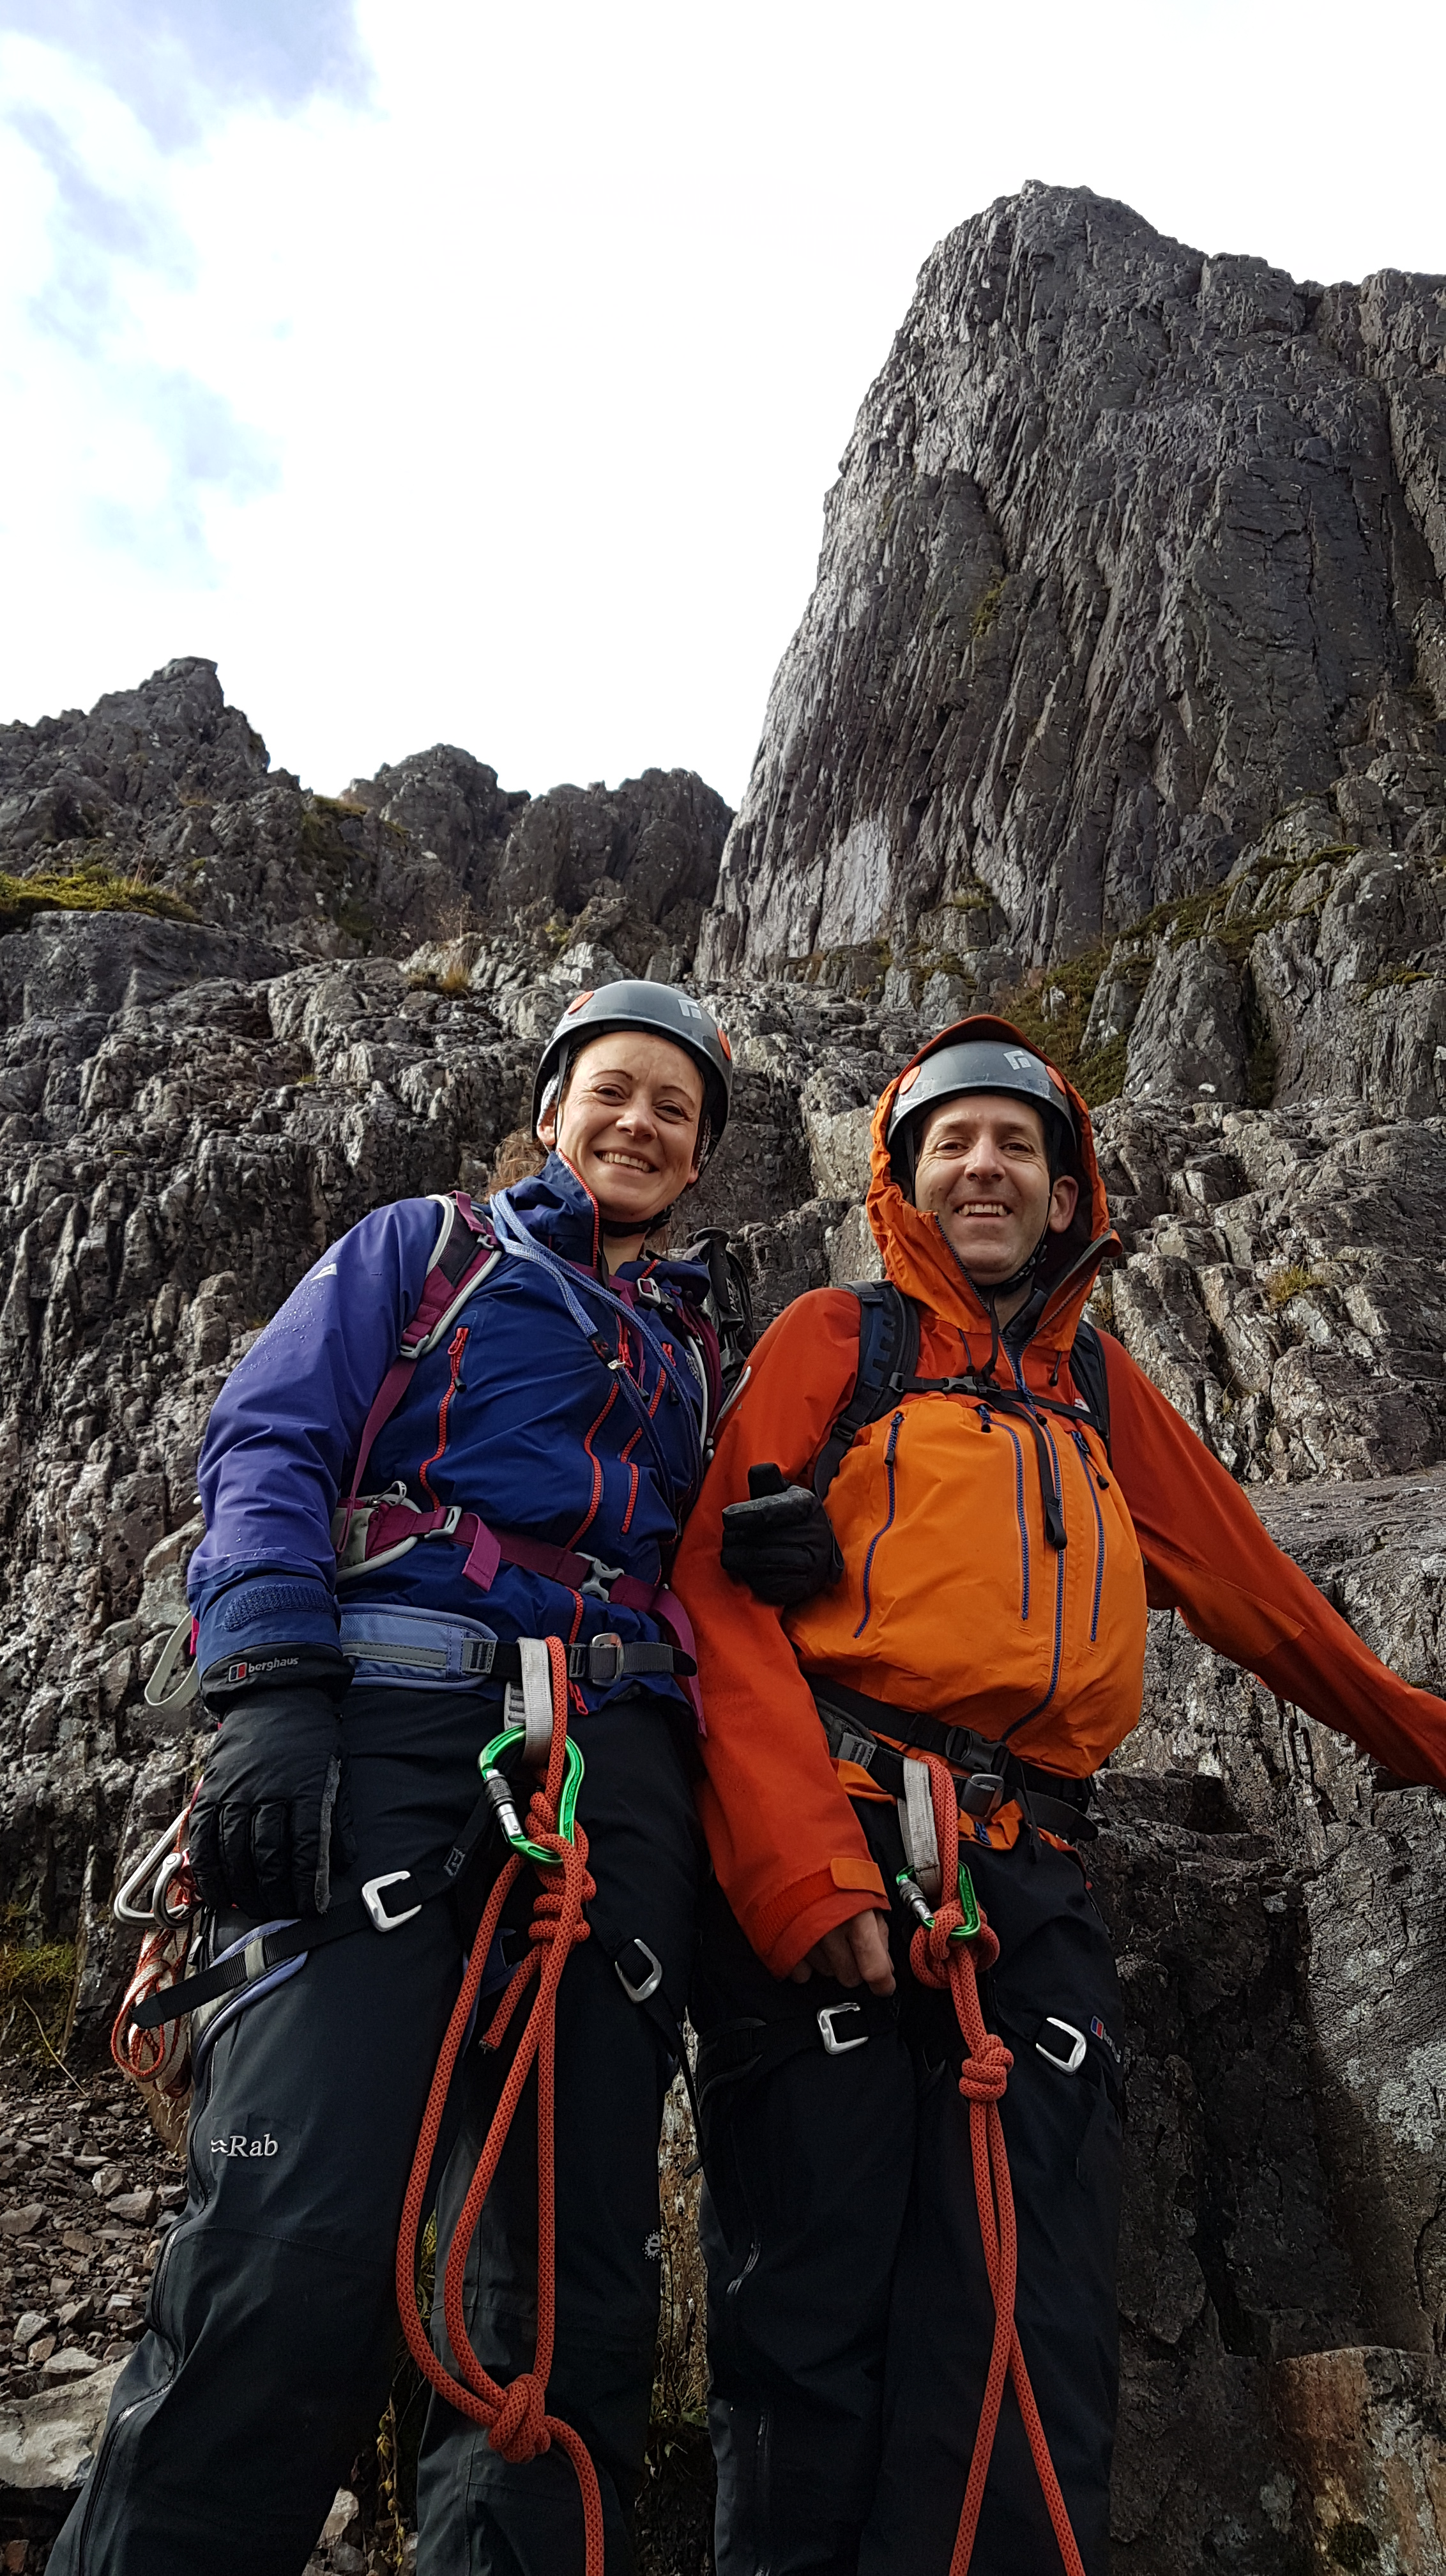 Smiles on Curved  Ridge on a guided ascent with Lochaber Guides